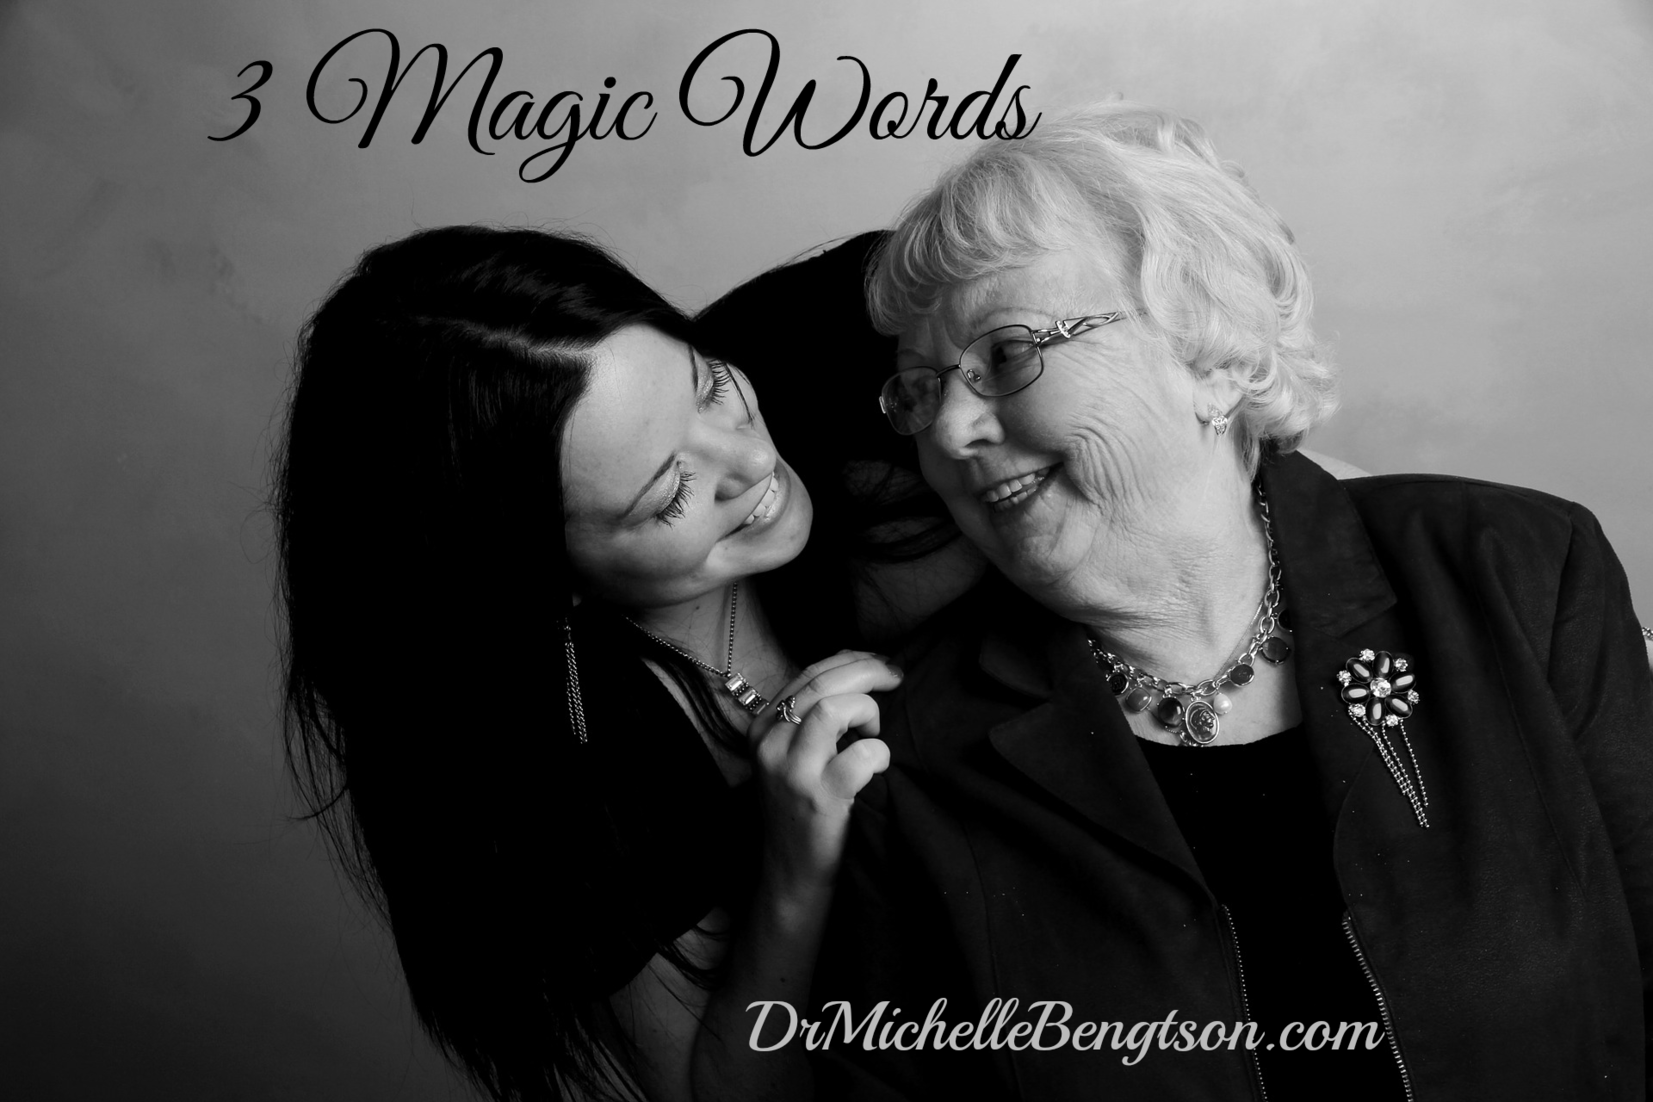 3 Magic Words by Dr. Michelle Bengtson